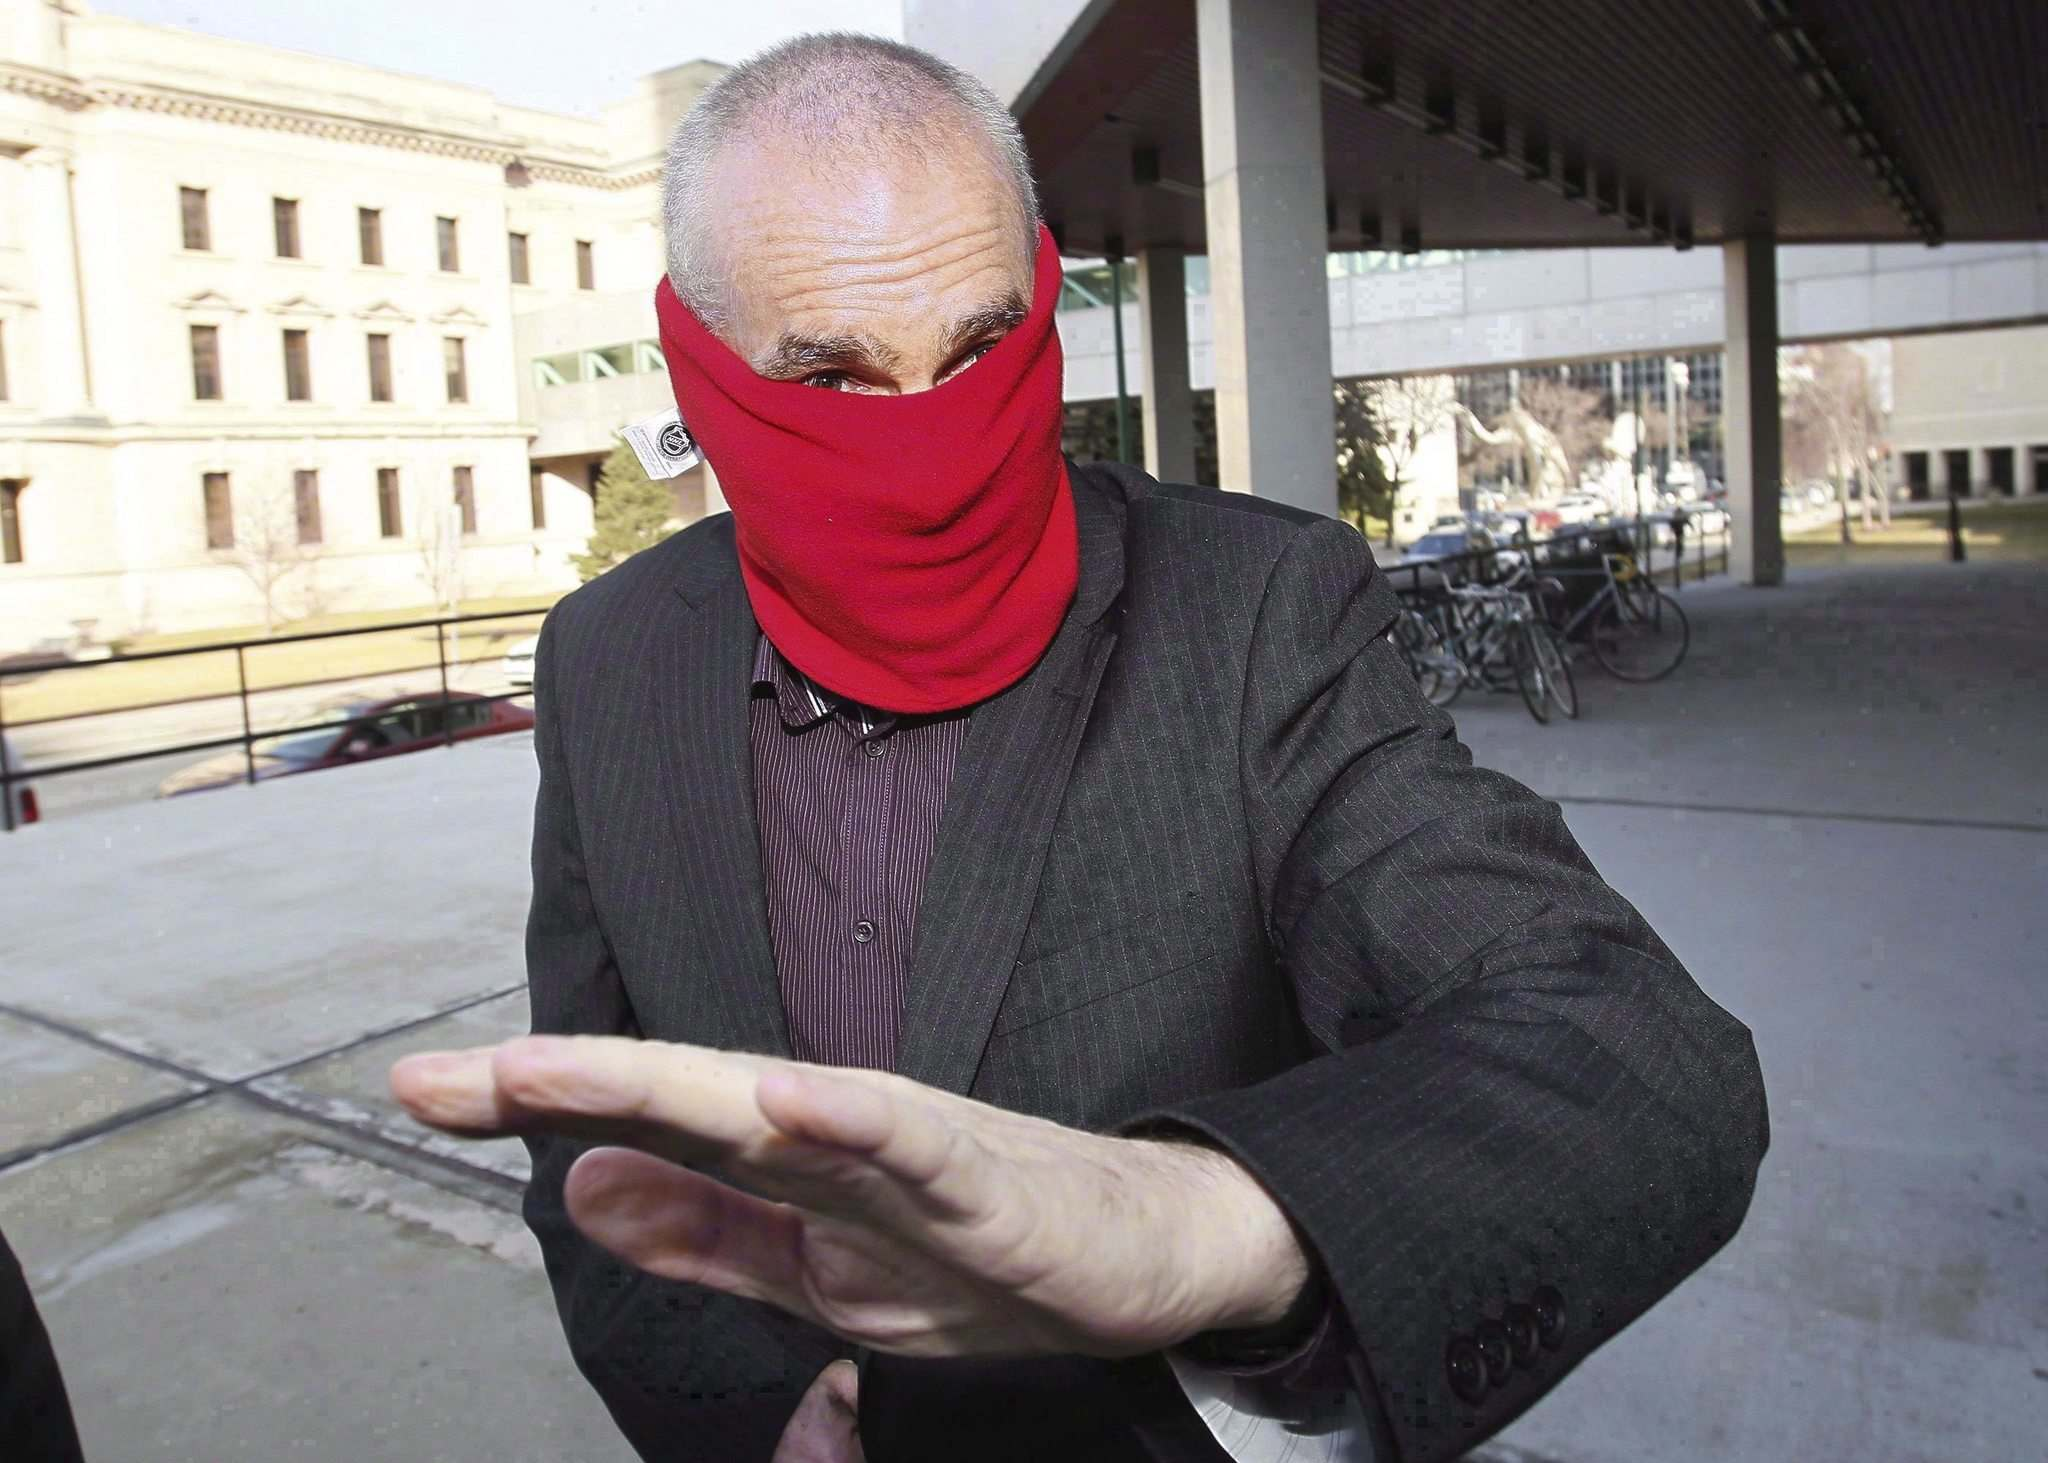 Graham James arrives at court for sentencing in Winnipeg on March 20, 2012. (John Woods / The Canadian Press files)</p>